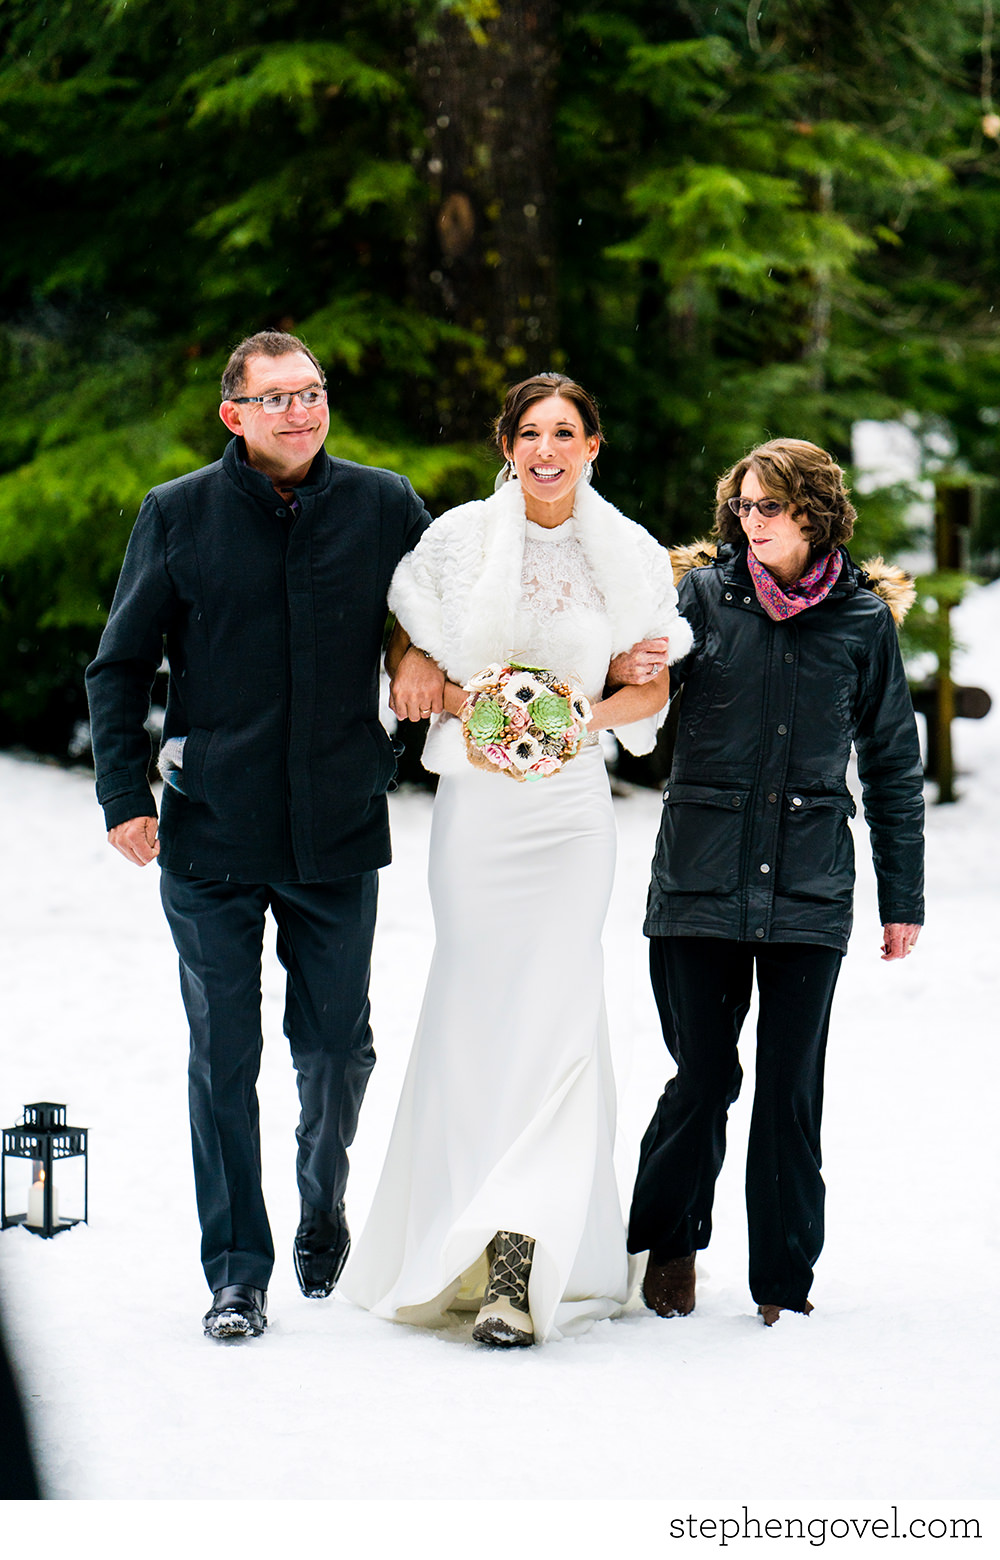 whistlerwinterwedding09.jpg